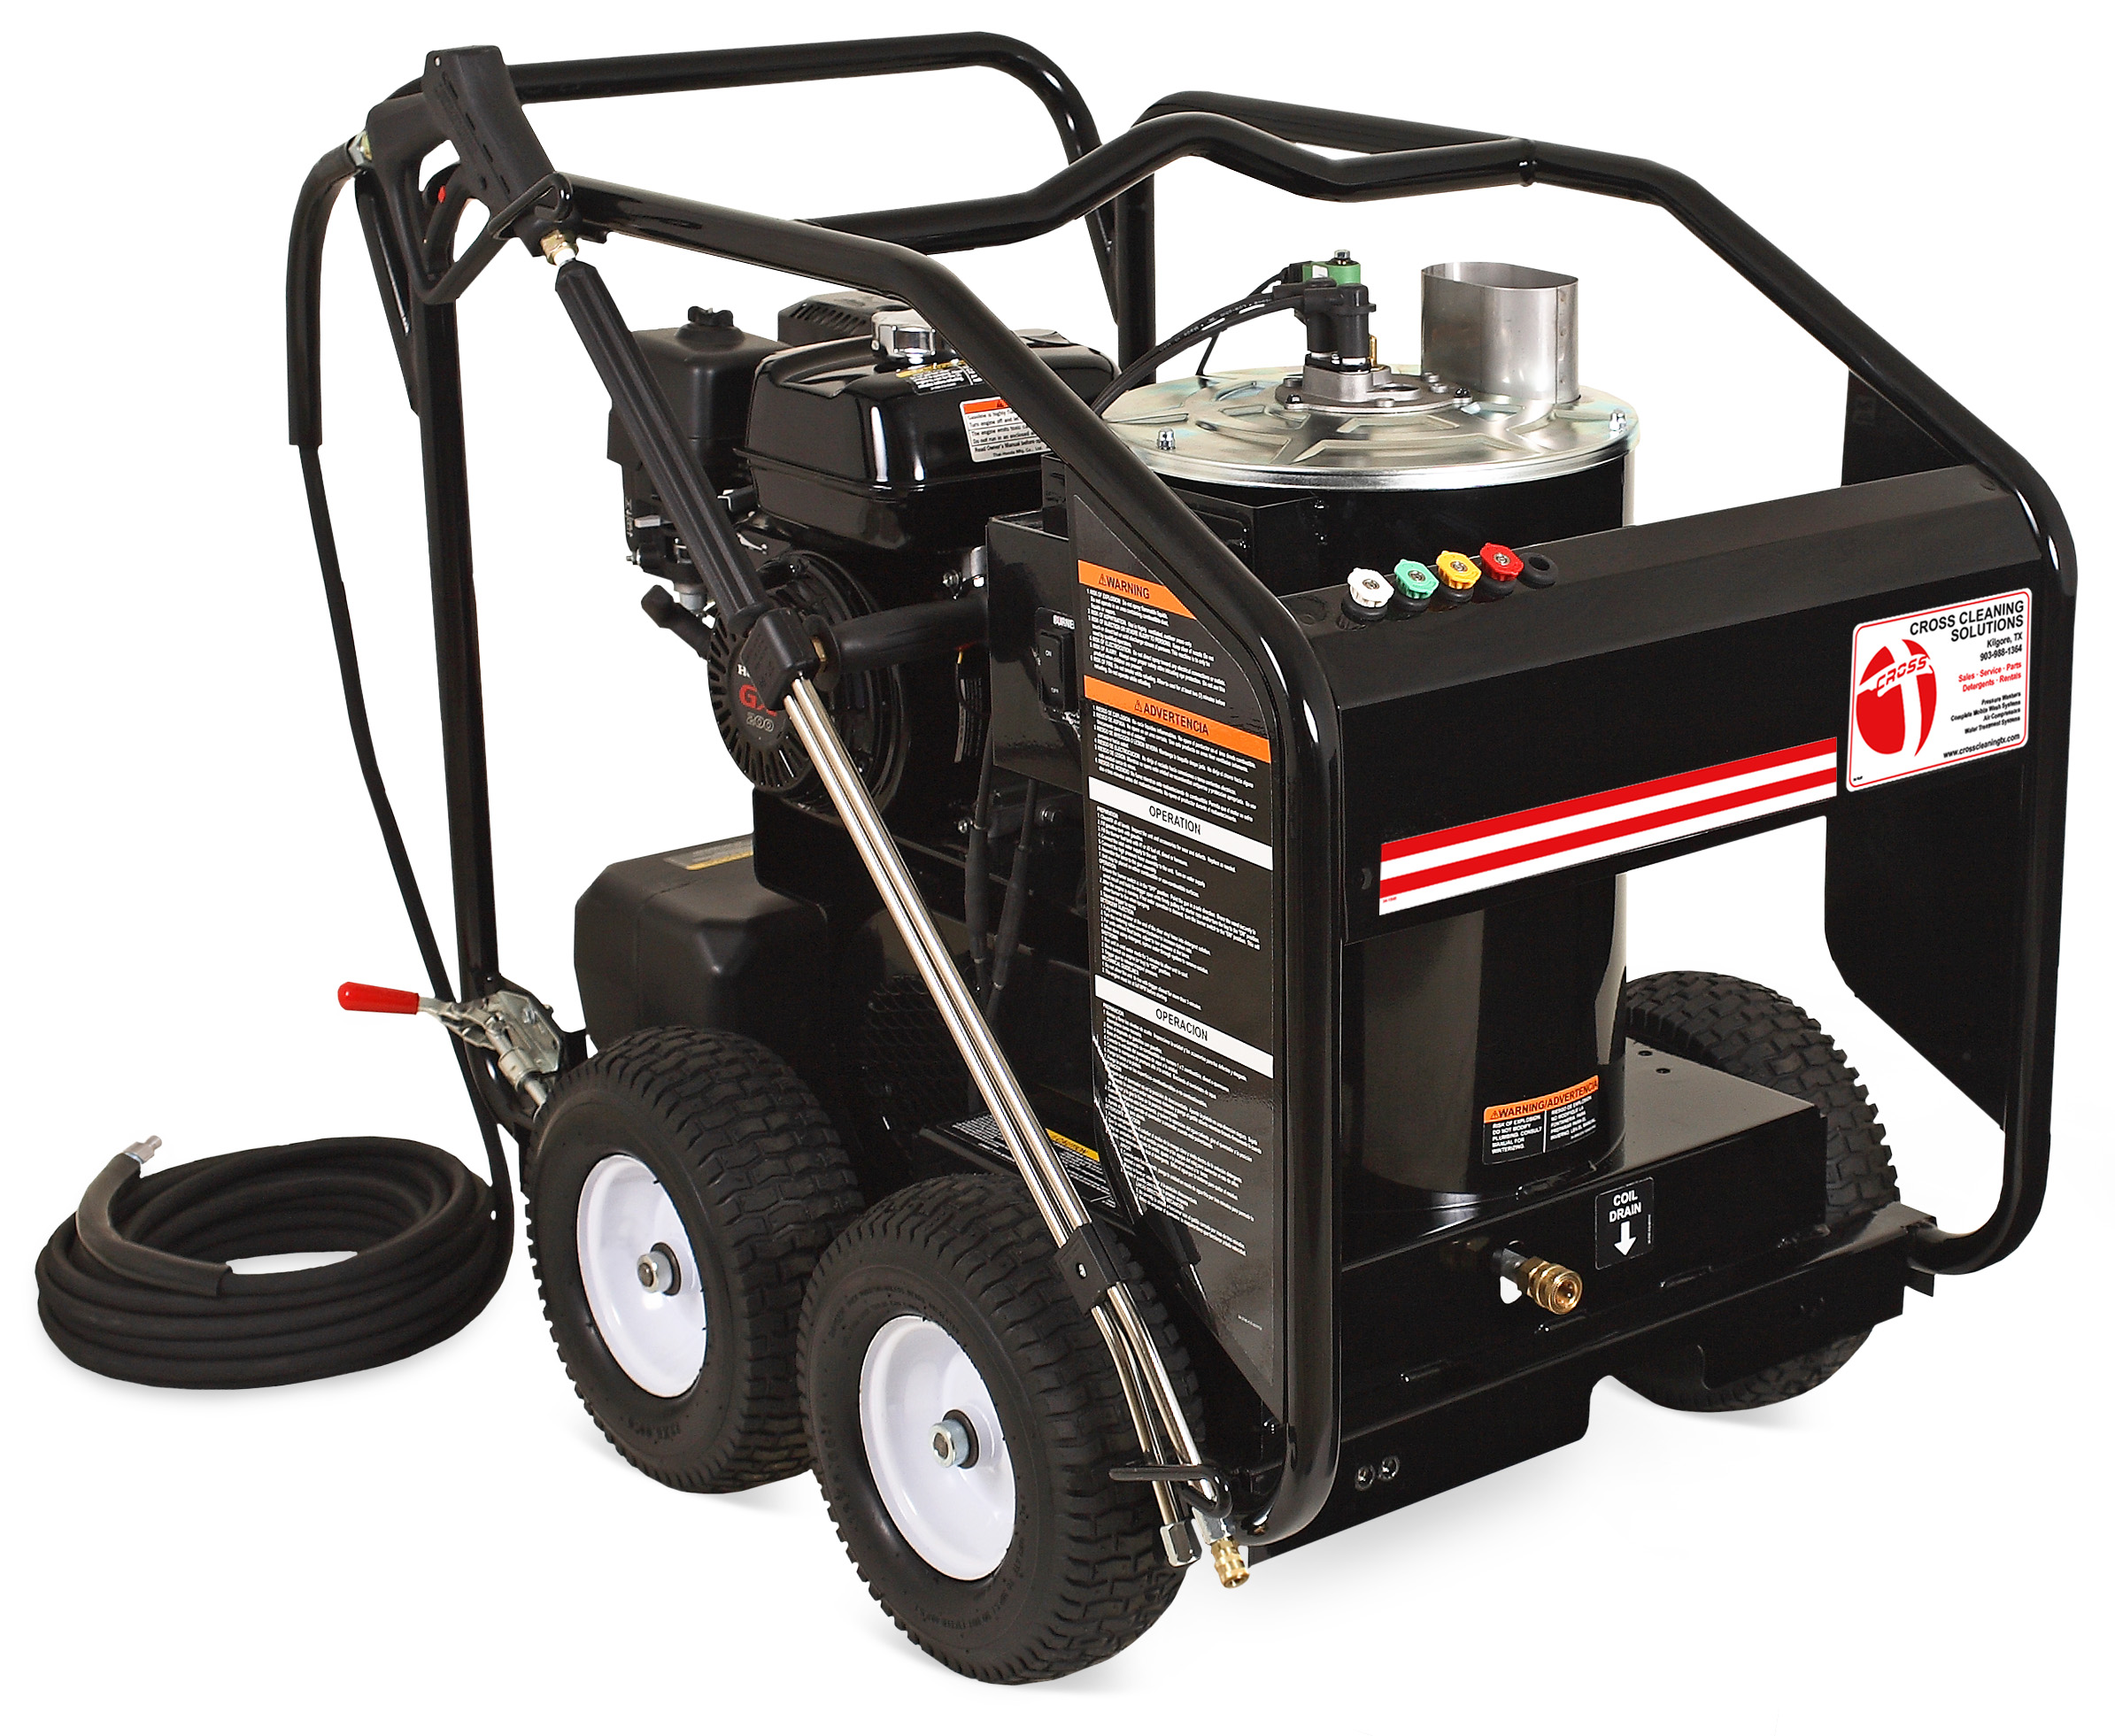 HSP Series Gasoline Direct Drive Hot Water Pressure Washers